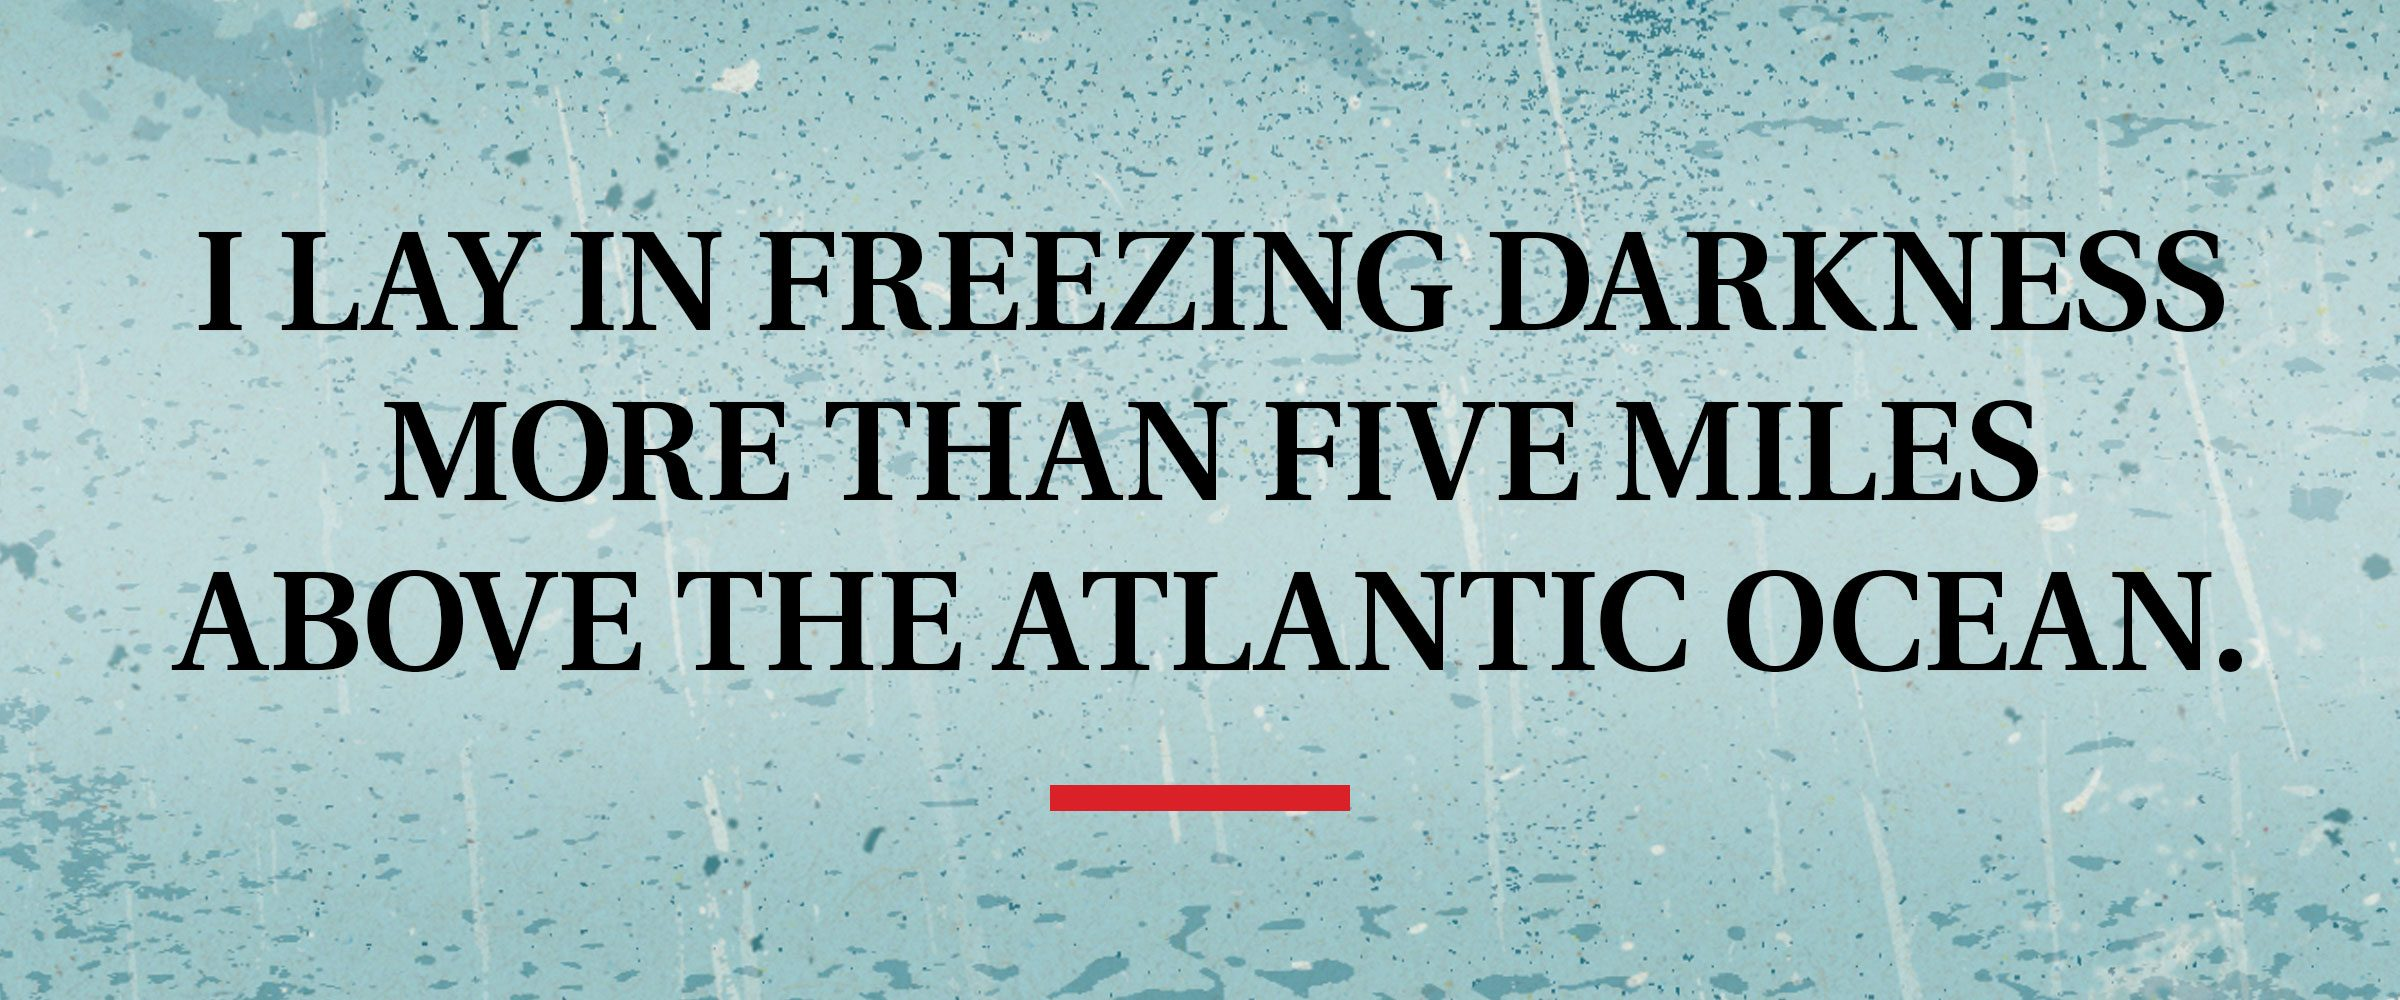 pull quote text: I lay in freezing darkness more than five miles above the Atlantic Ocean.